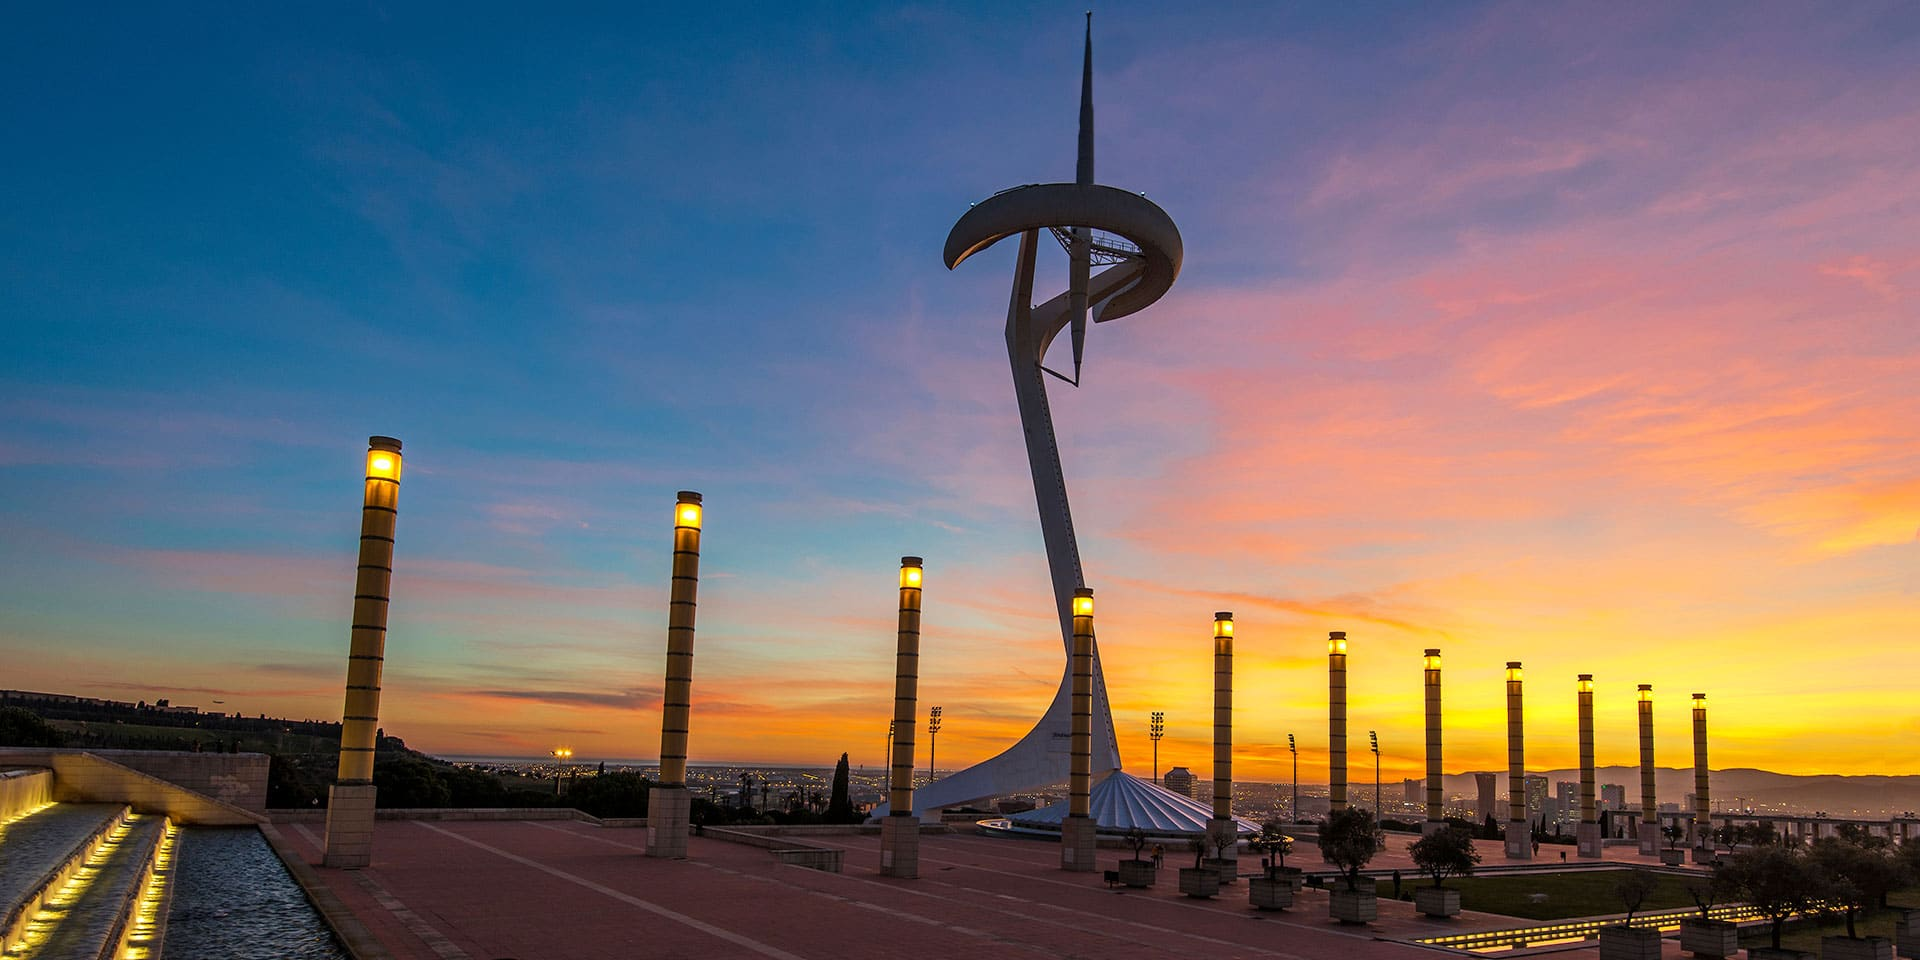 Sunset at Barcelona's Olympic Park.